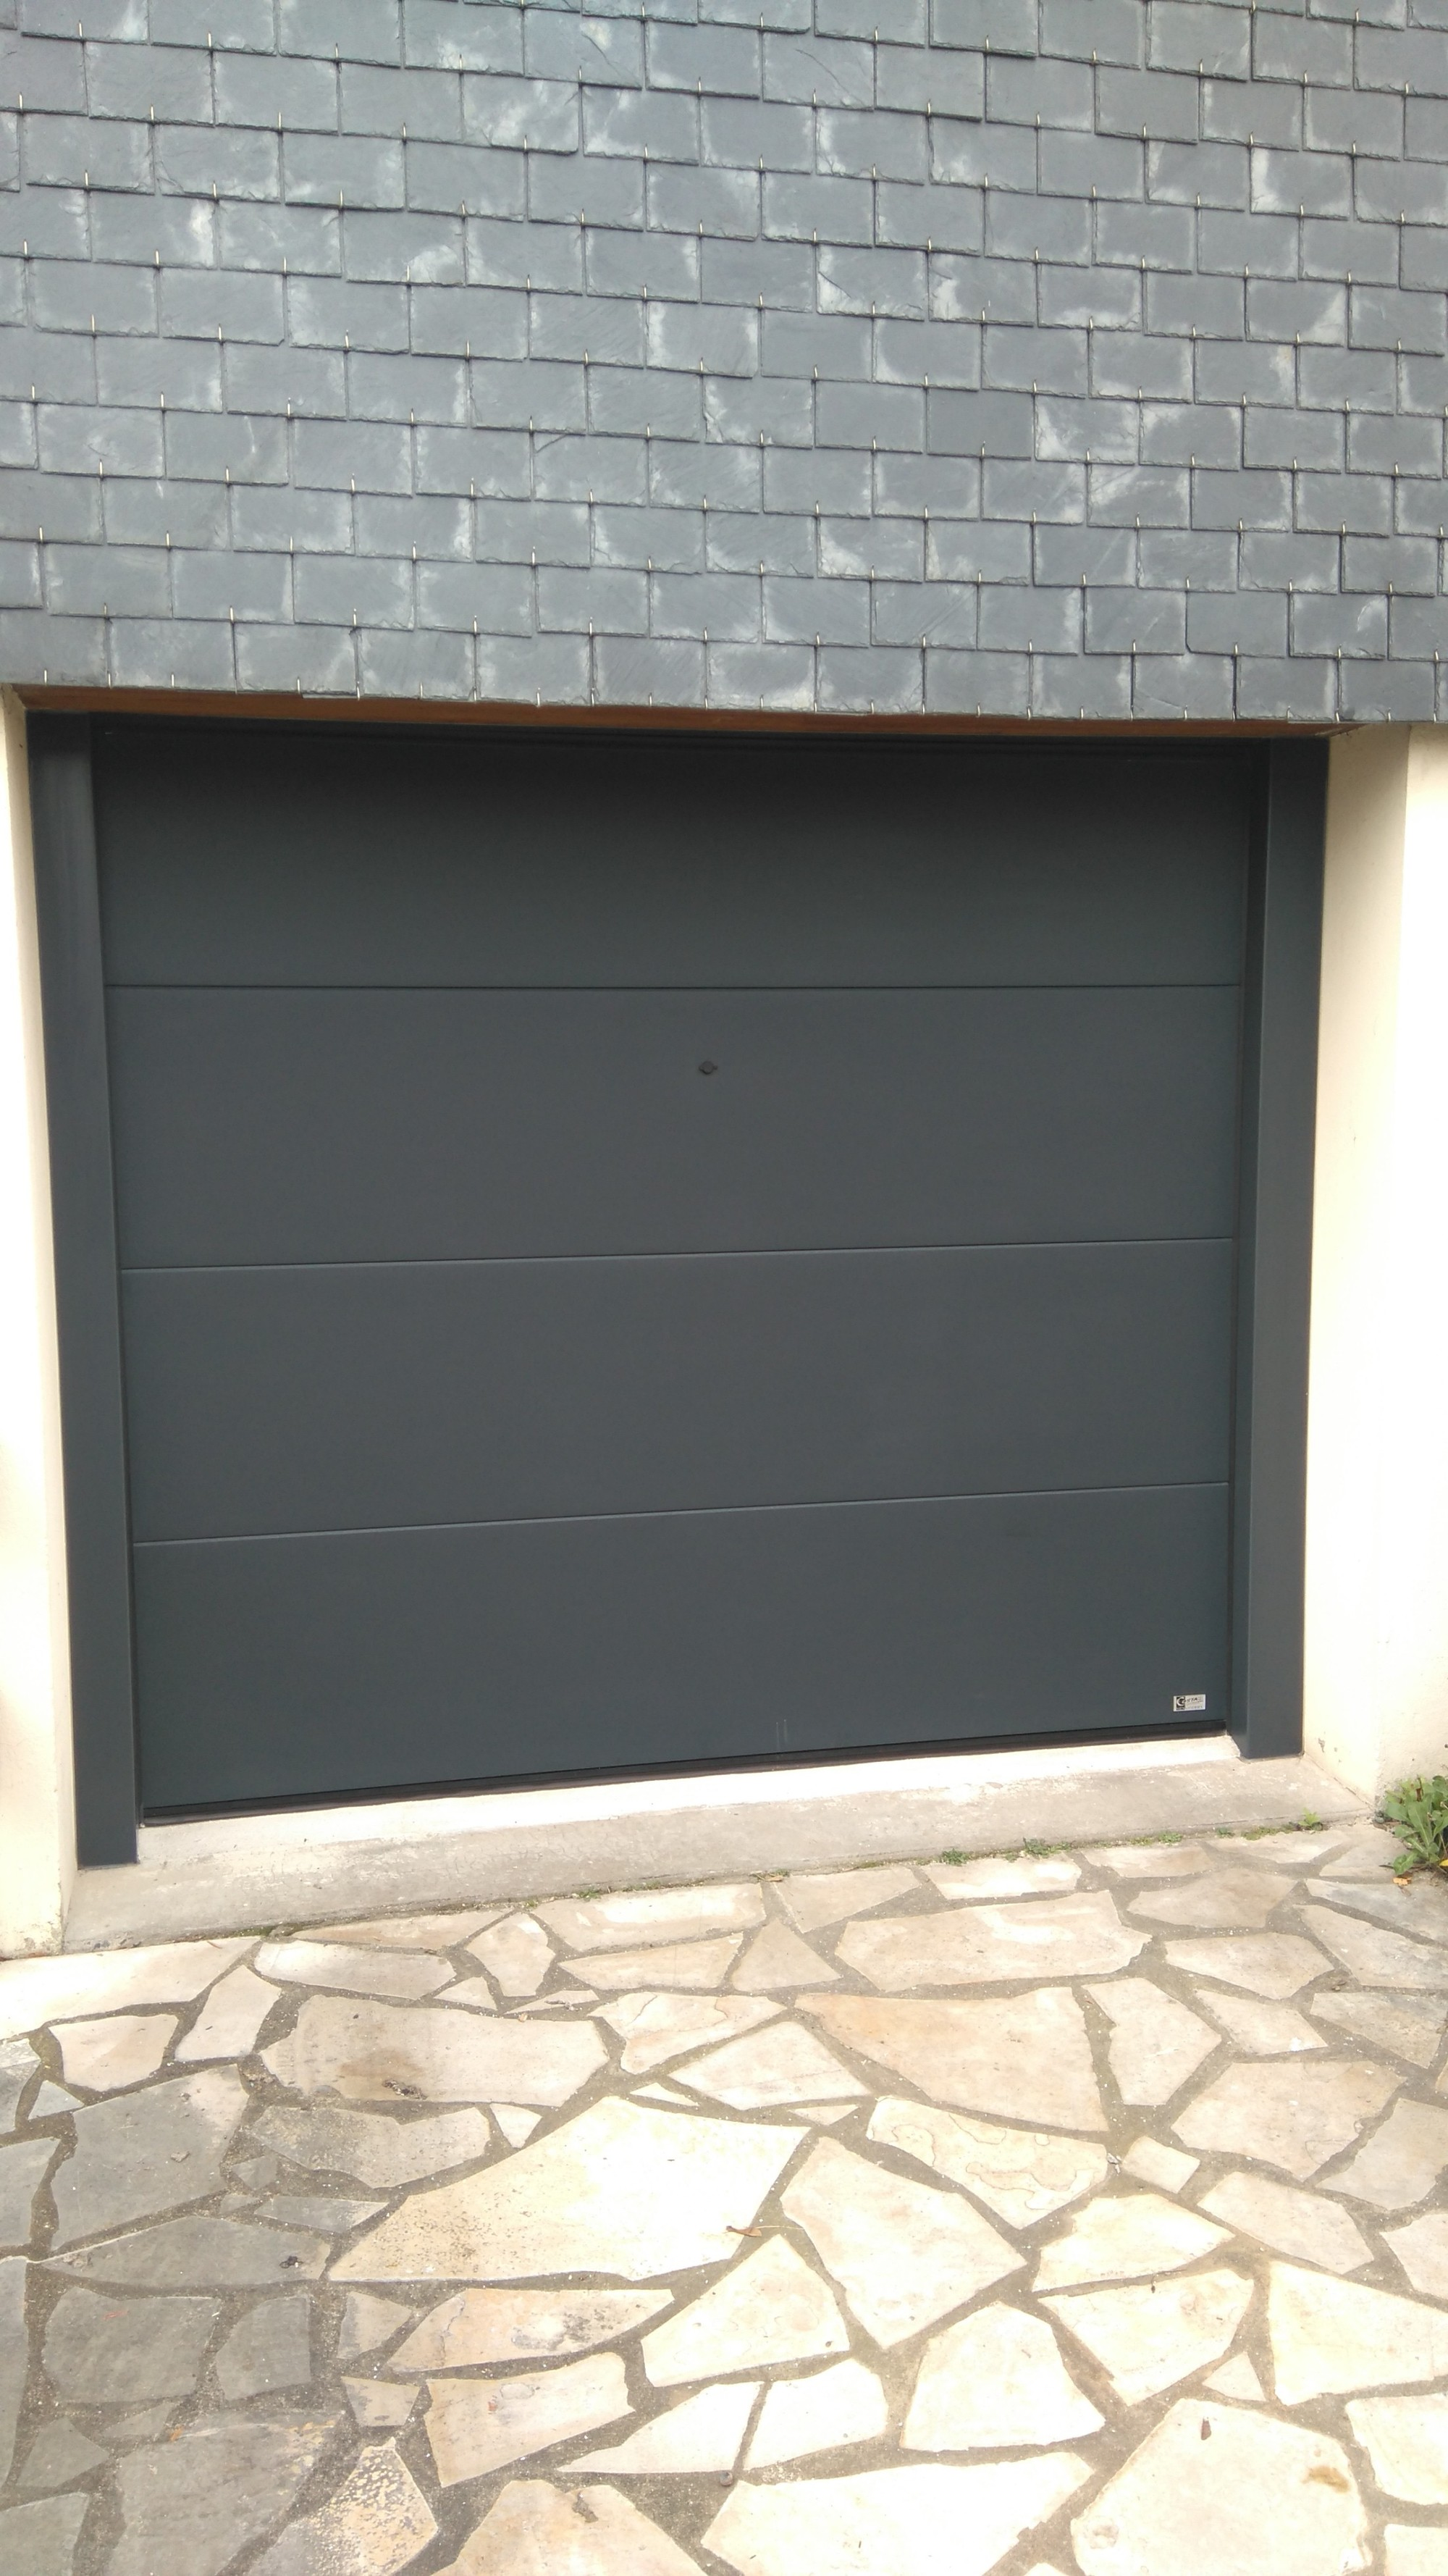 Porte de garage sectionnelle gris anthracite saint brieuc - Porte de garage sectionnelle gris anthracite ...